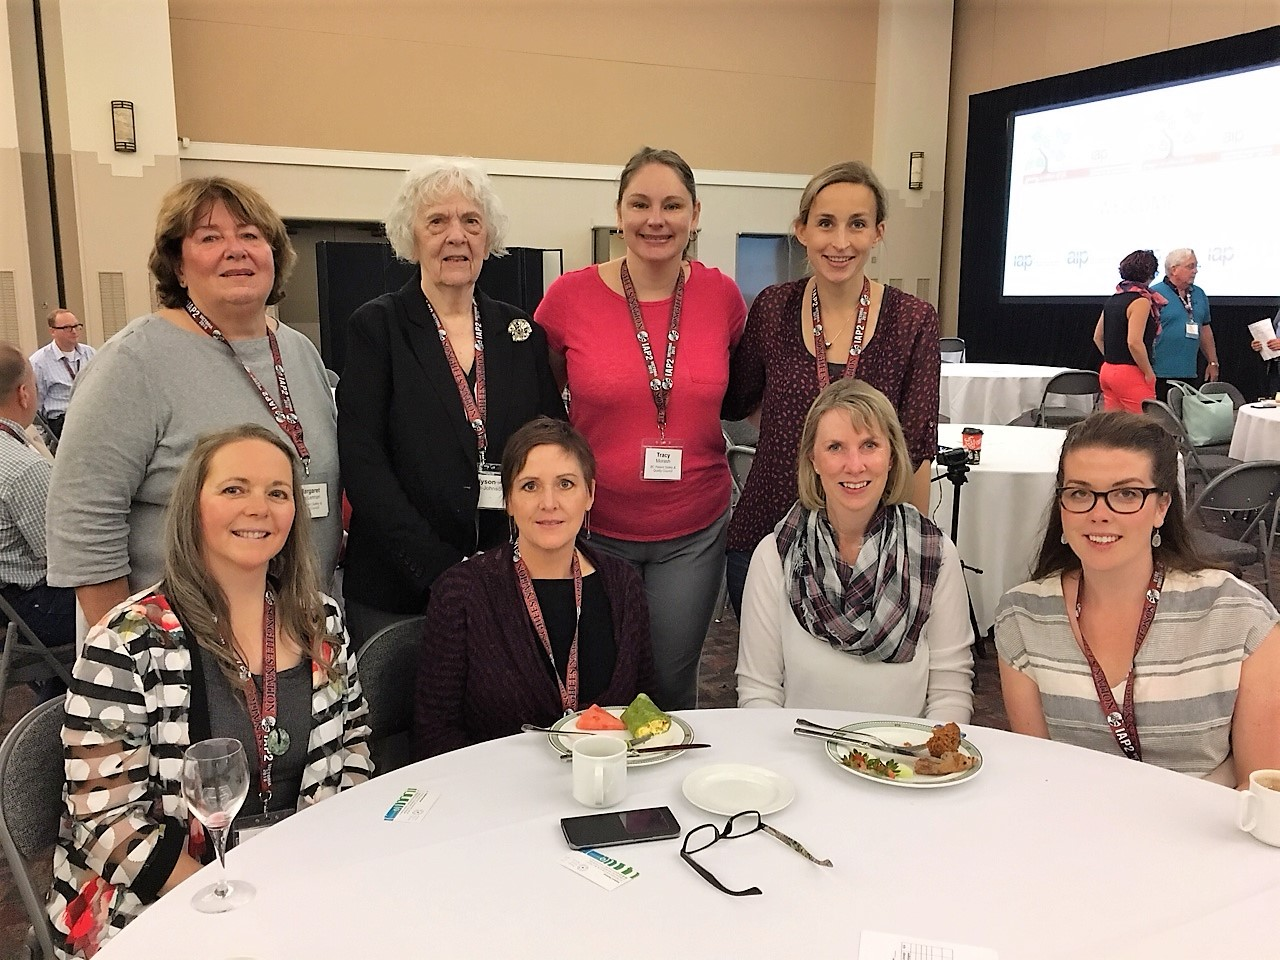 PVN patient partners and engagement leaders at the IAP2 Conference in Victoria